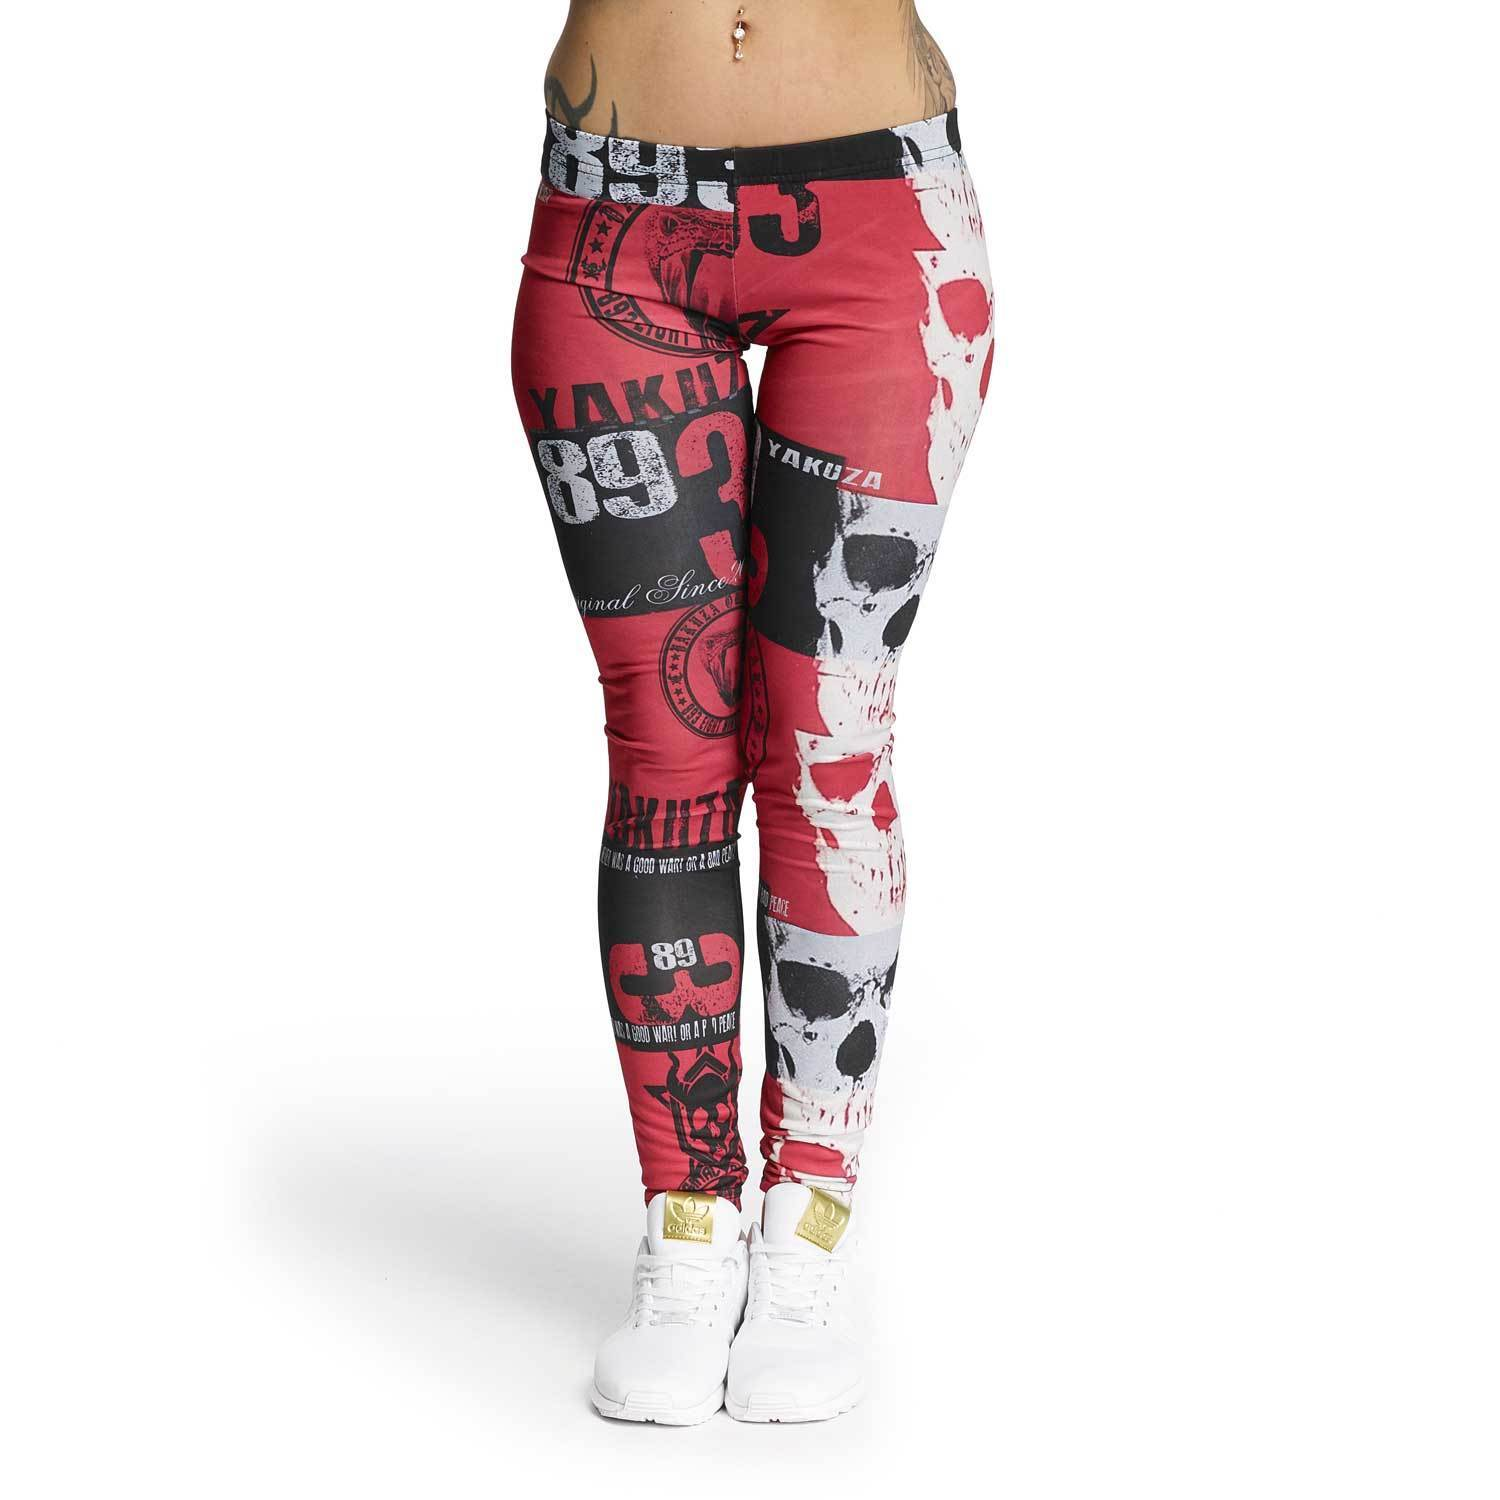 YAKUZA - Leggings LEB 11120  Reel  multicolord (bunt)